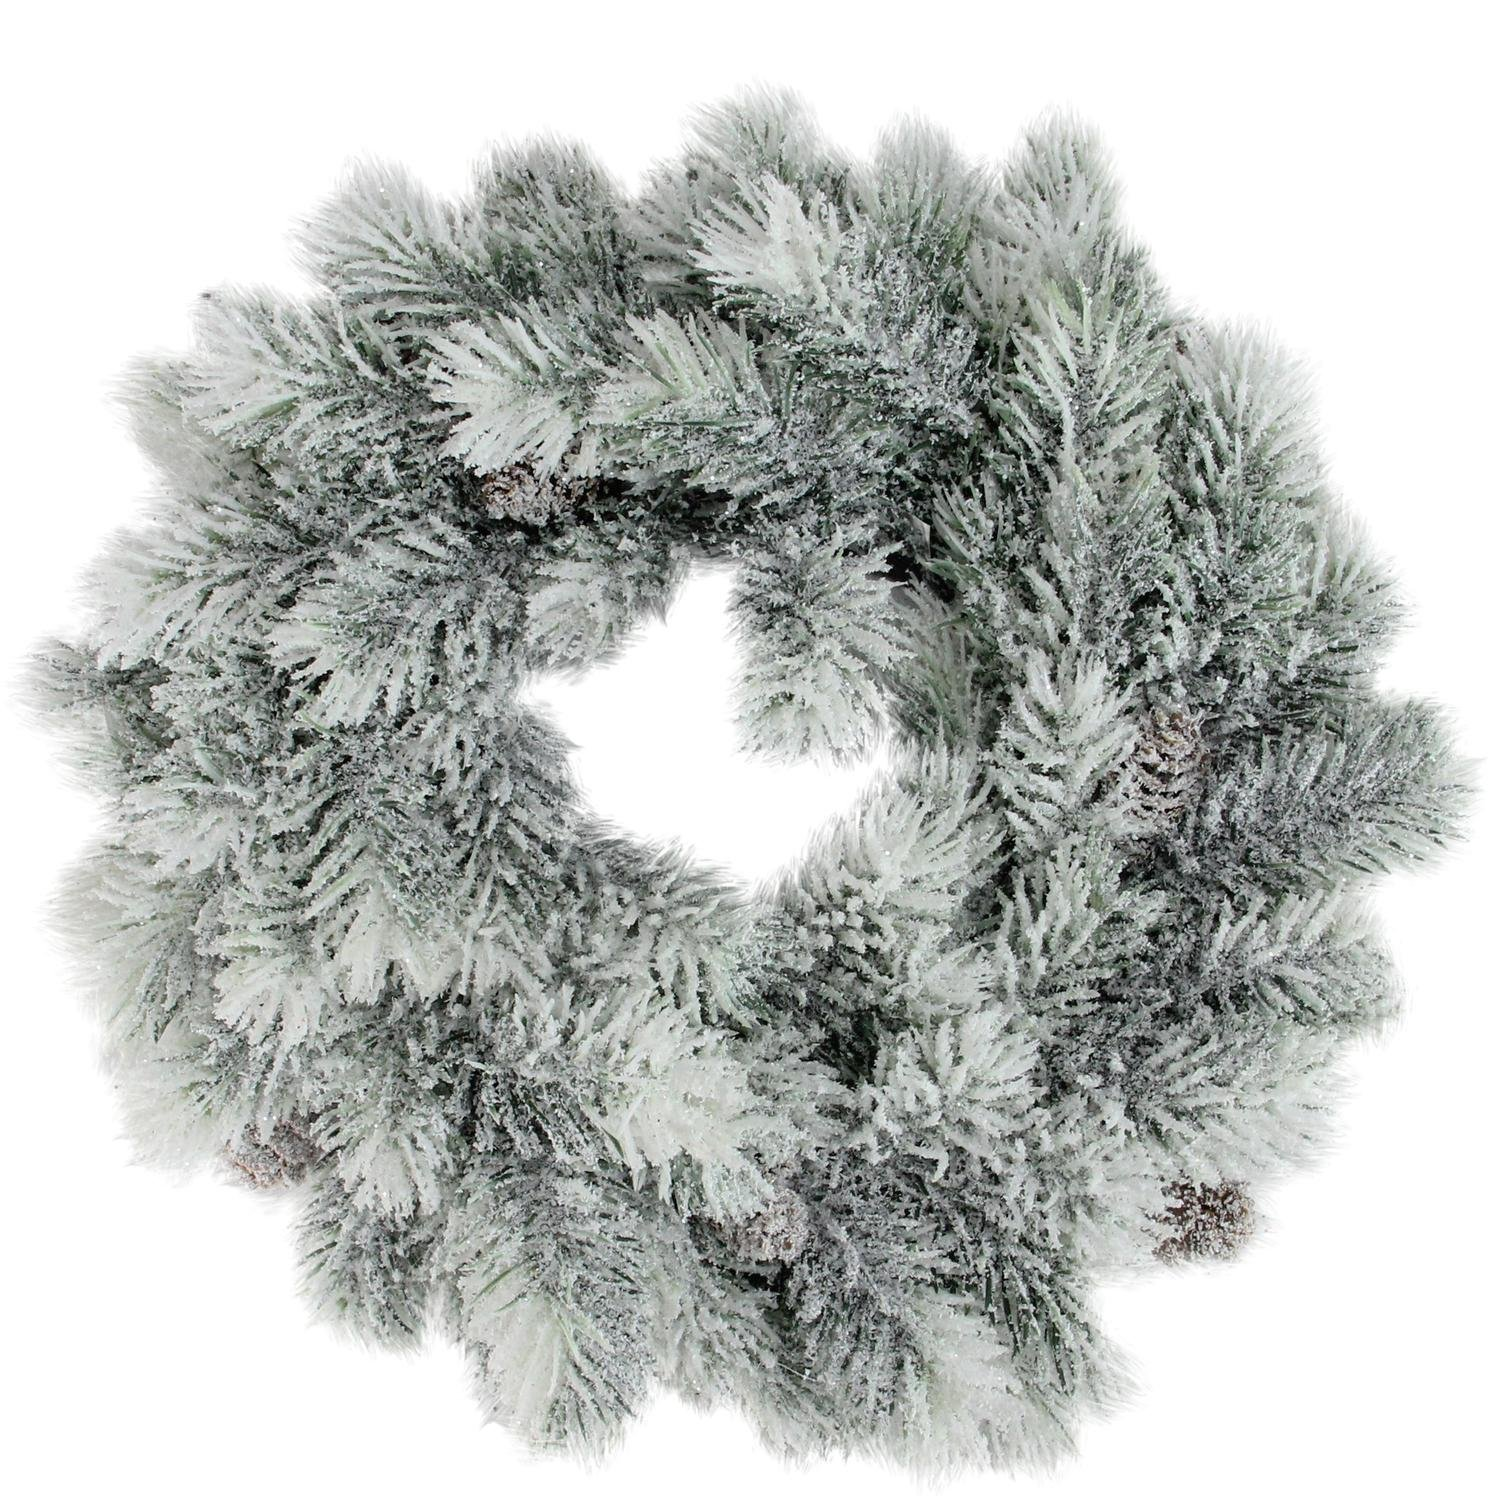 Northlight NL00974 Christmas Wreath with Pine Cones, 12''